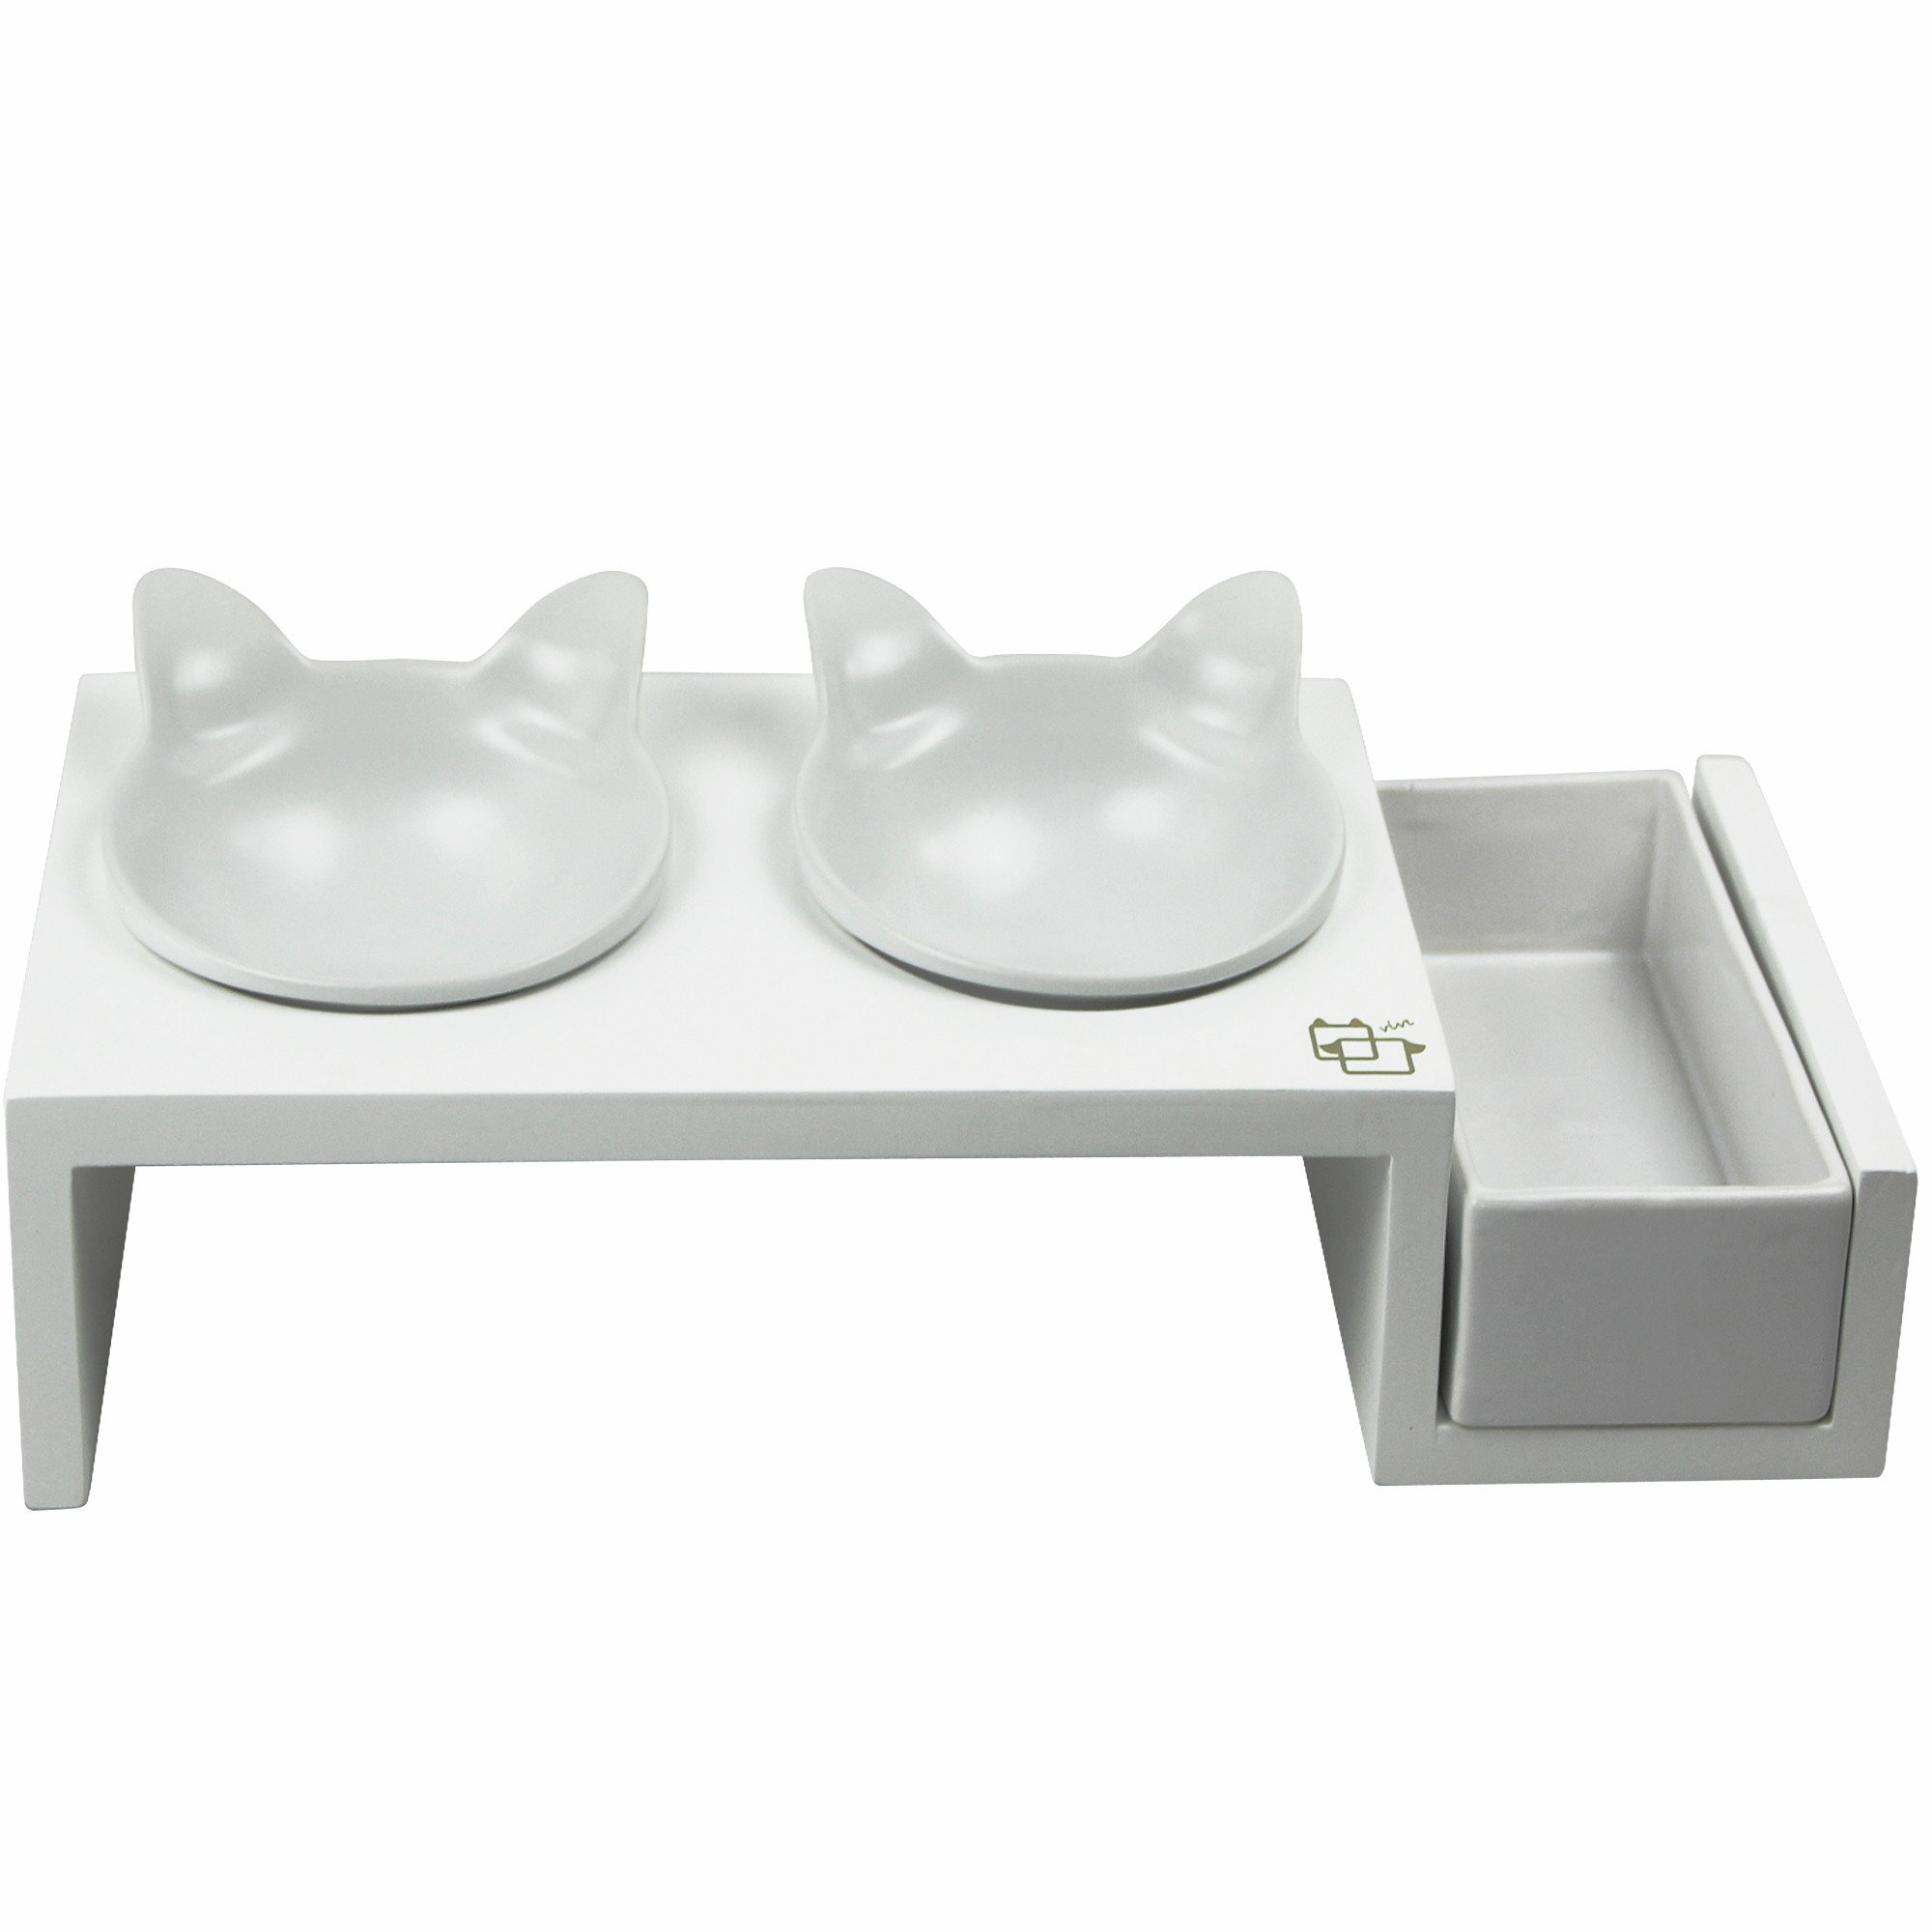 ViviPet Cat Dining Table - Aoshima Collection ❤_15° Tilted Platform with Elevated Solid Pine Stand with Ceramic Hand Print and Craft Bowls_❤ (Pearl White Kitty Bowls, White Stand)